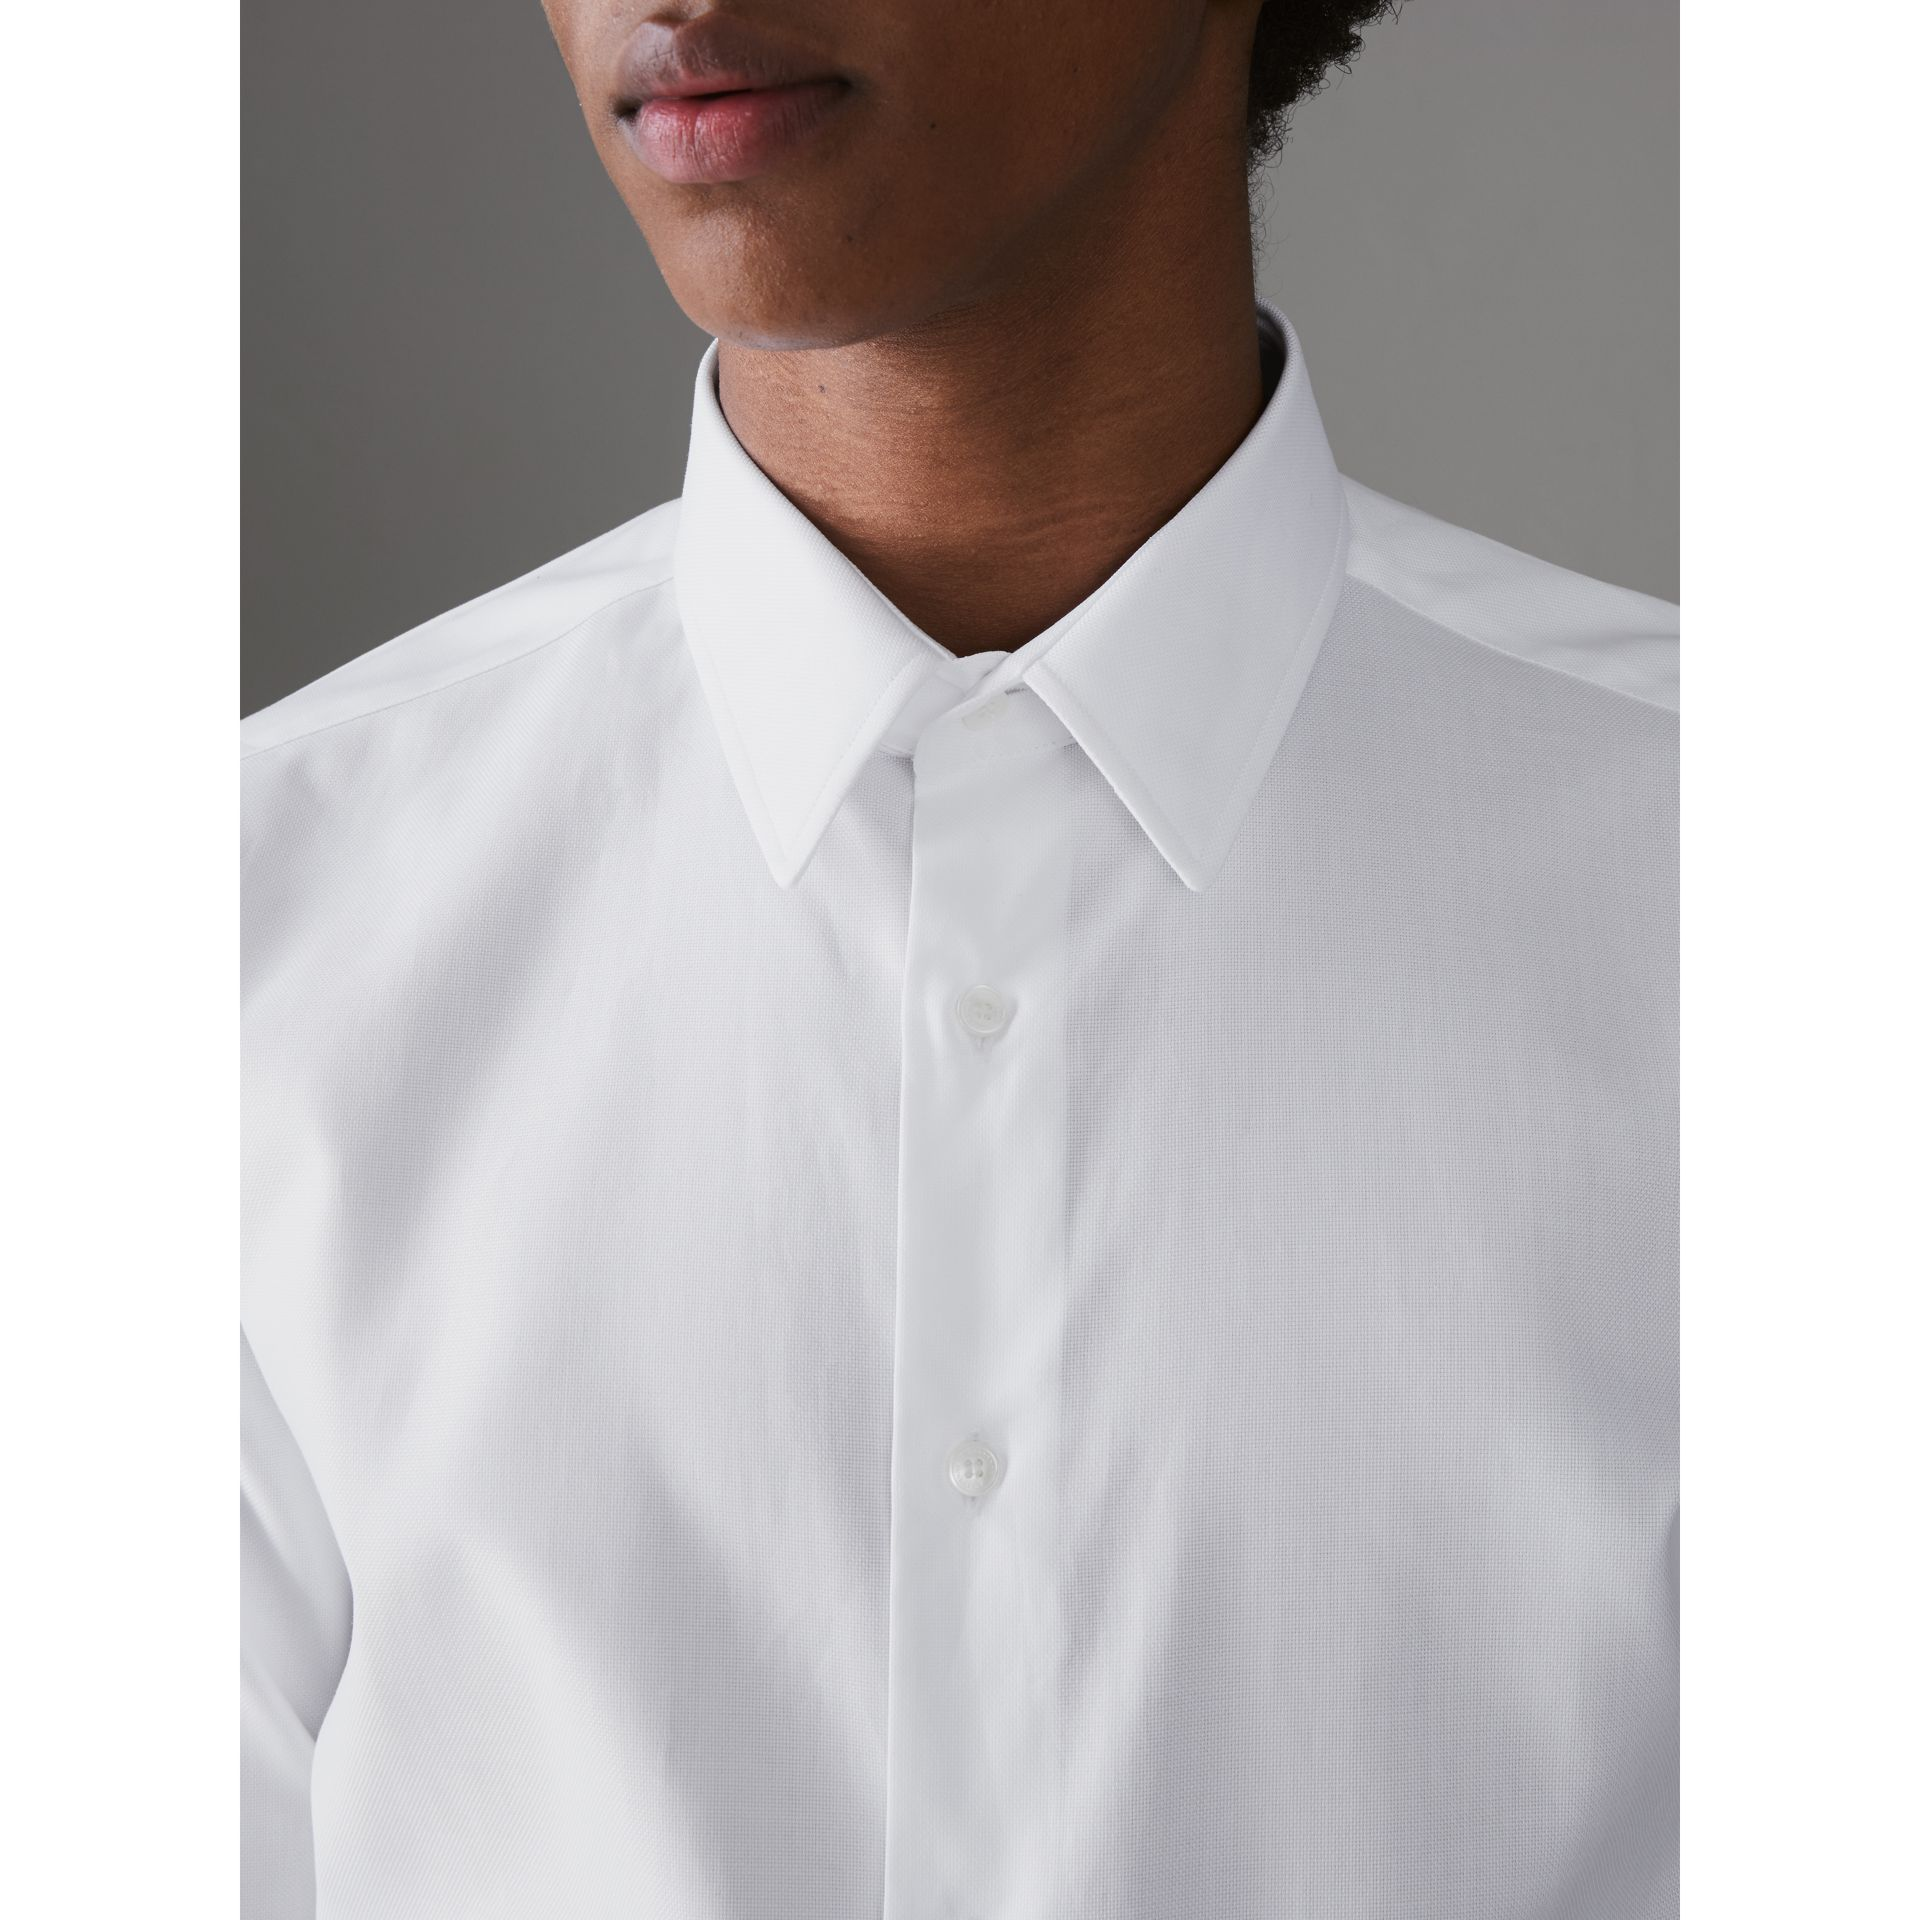 Modern Fit Cotton Shirt in White - Men | Burberry Canada - gallery image 1